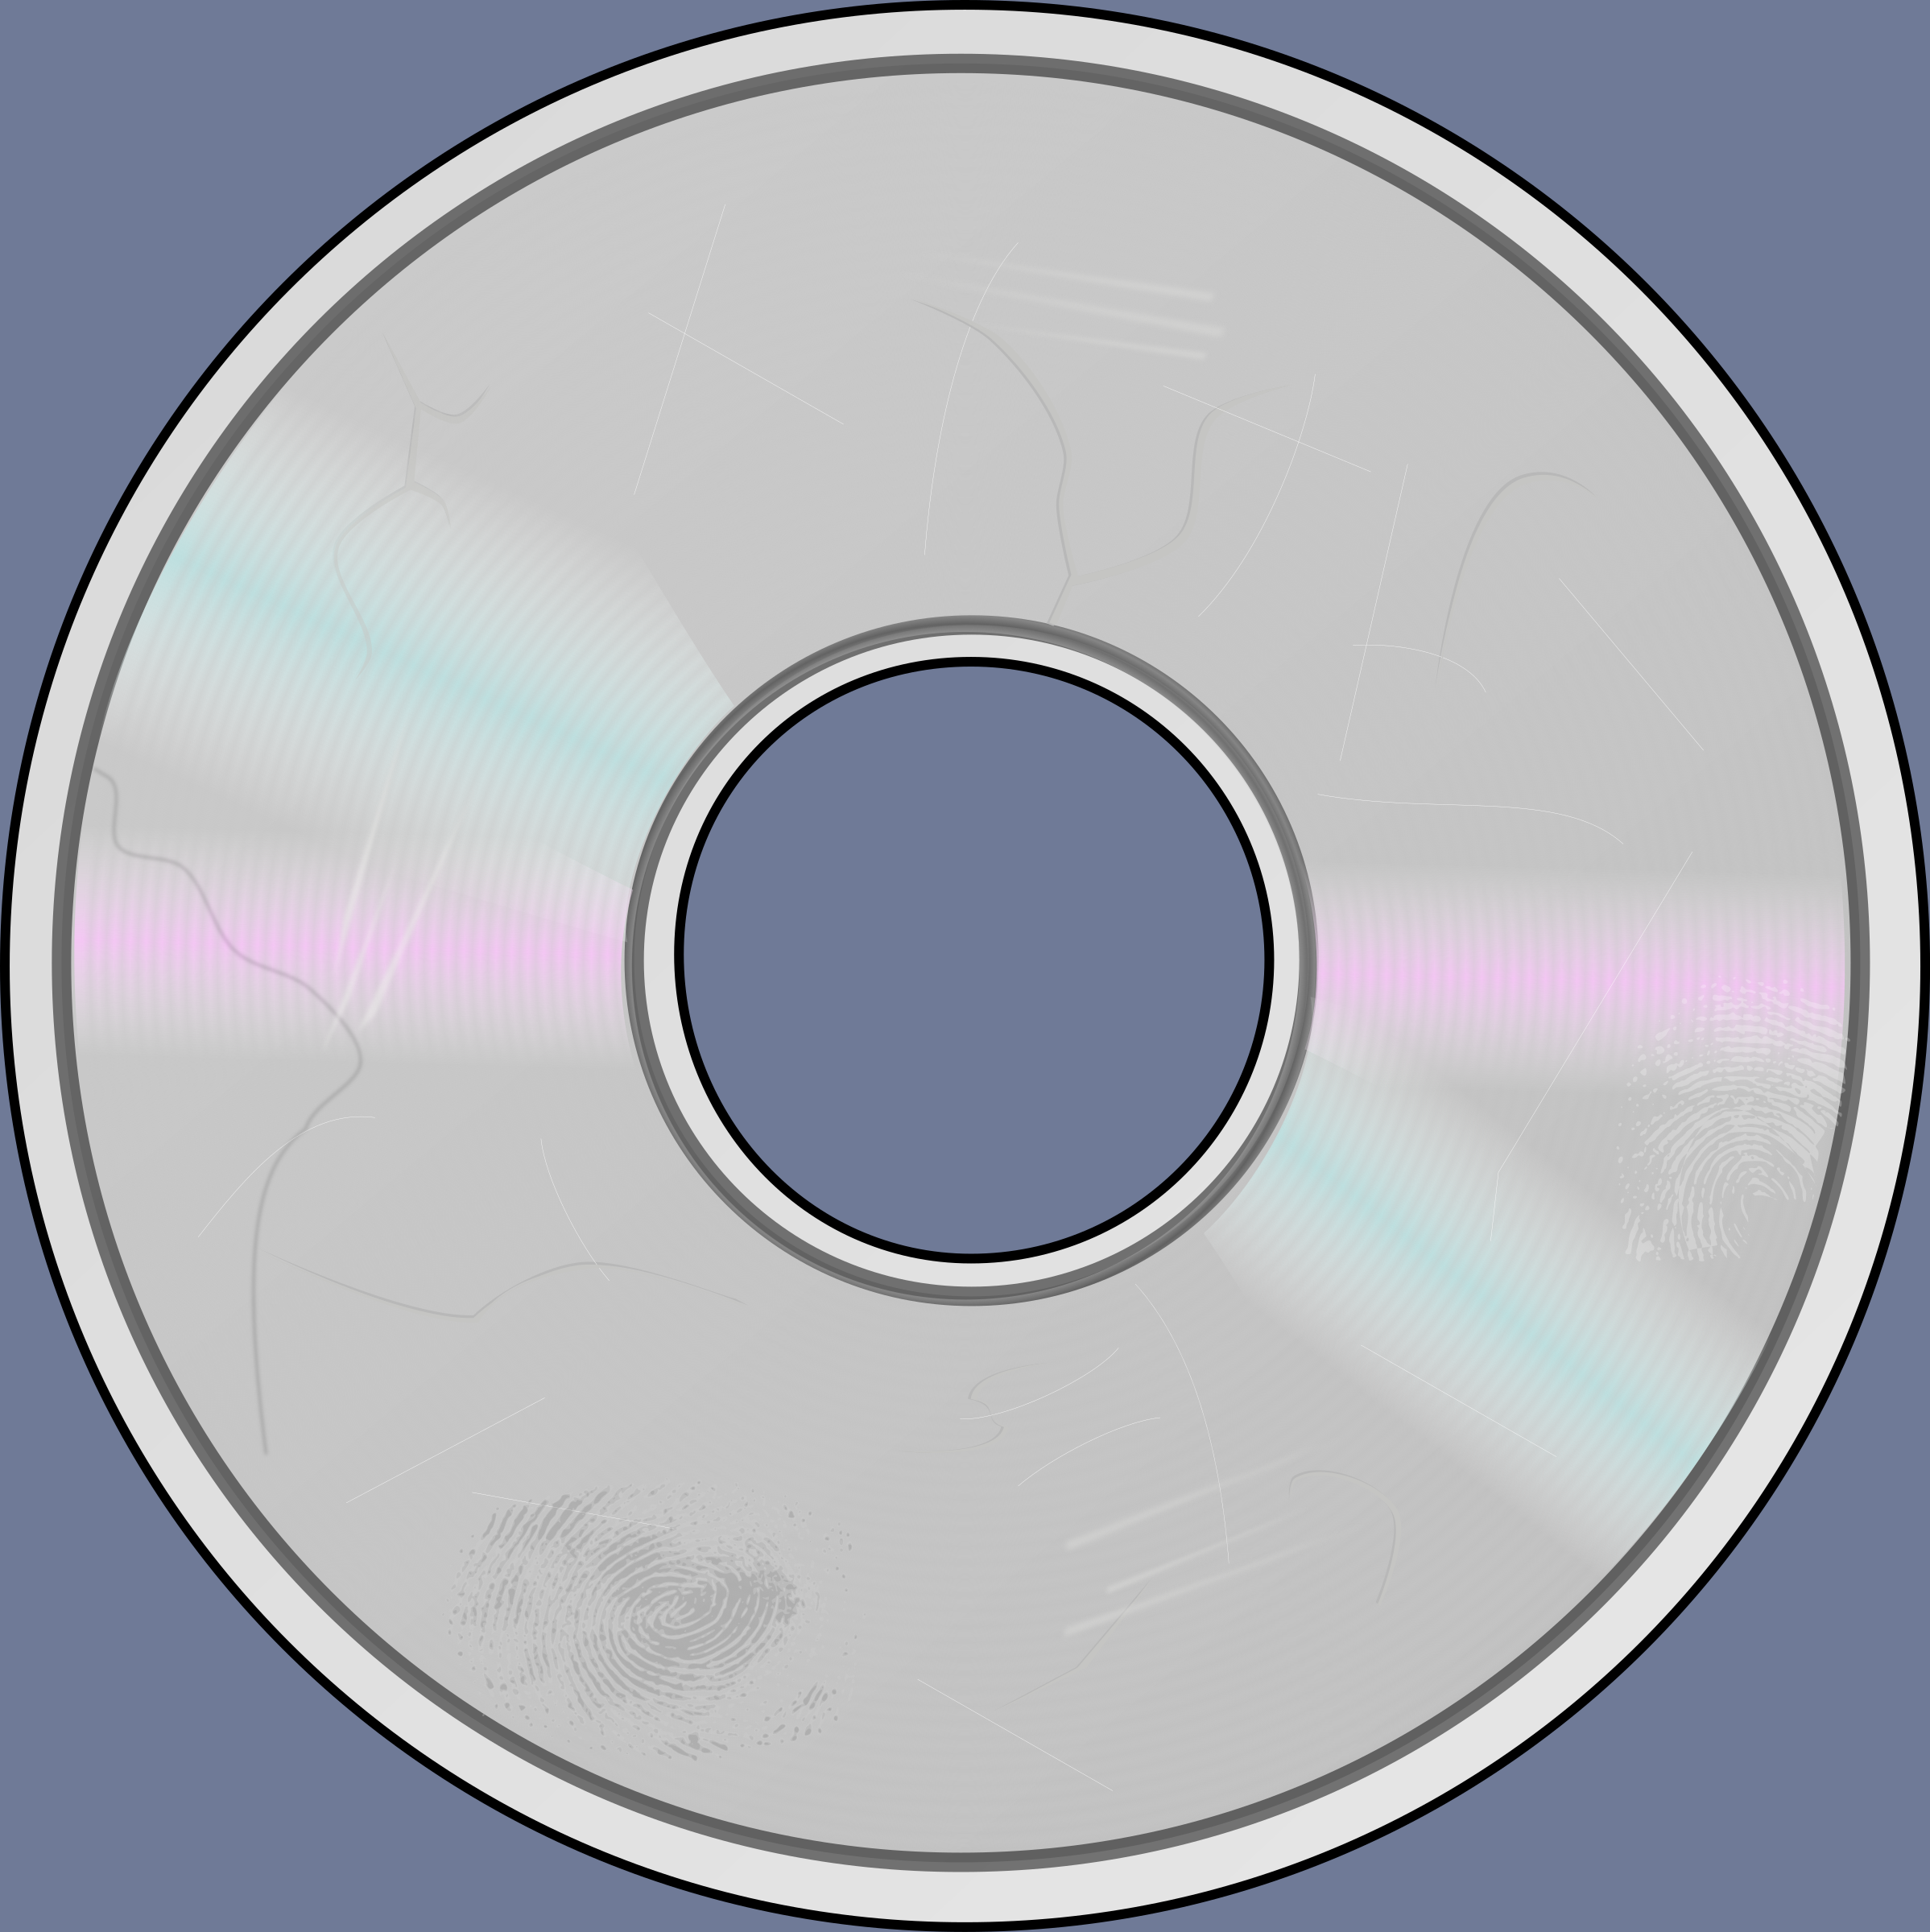 Damaged Compact Disc by eady